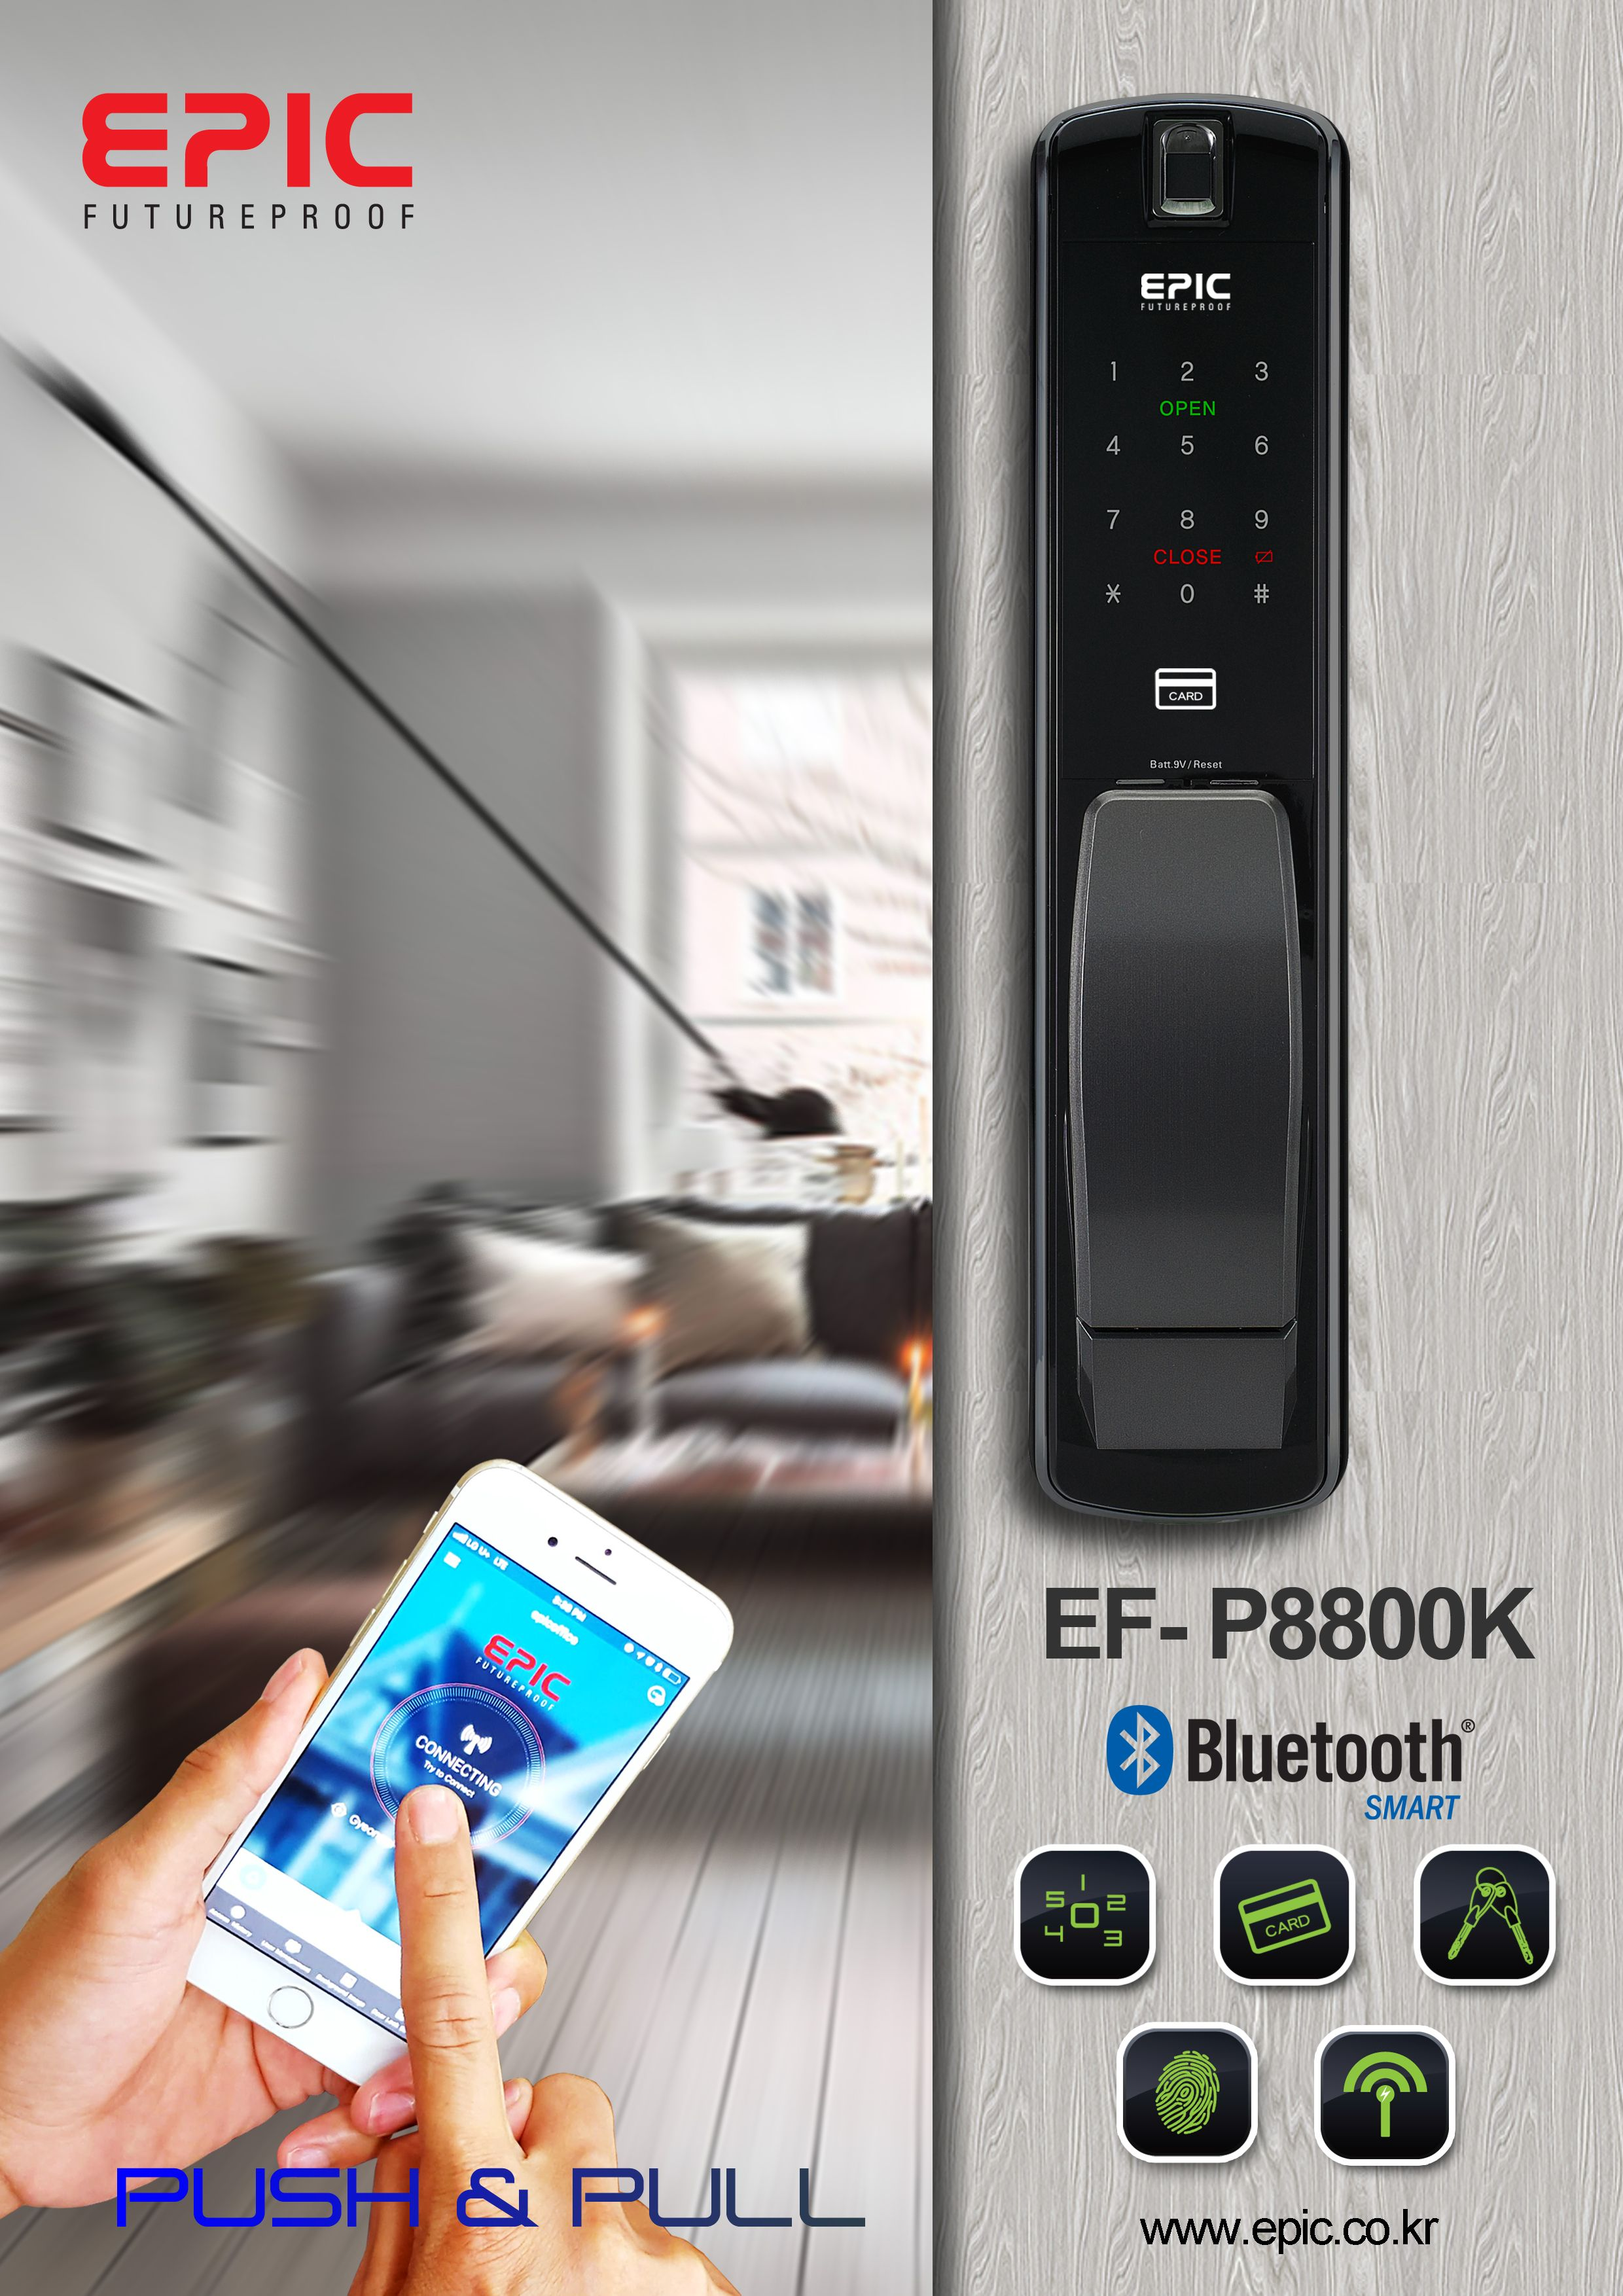 Home Improvement Mechanical Digital Push Button Door Lock Smart Home Keyless Keypad Combination Code Lock Waterproof Password Intelligent Lock Sturdy Construction Hardware